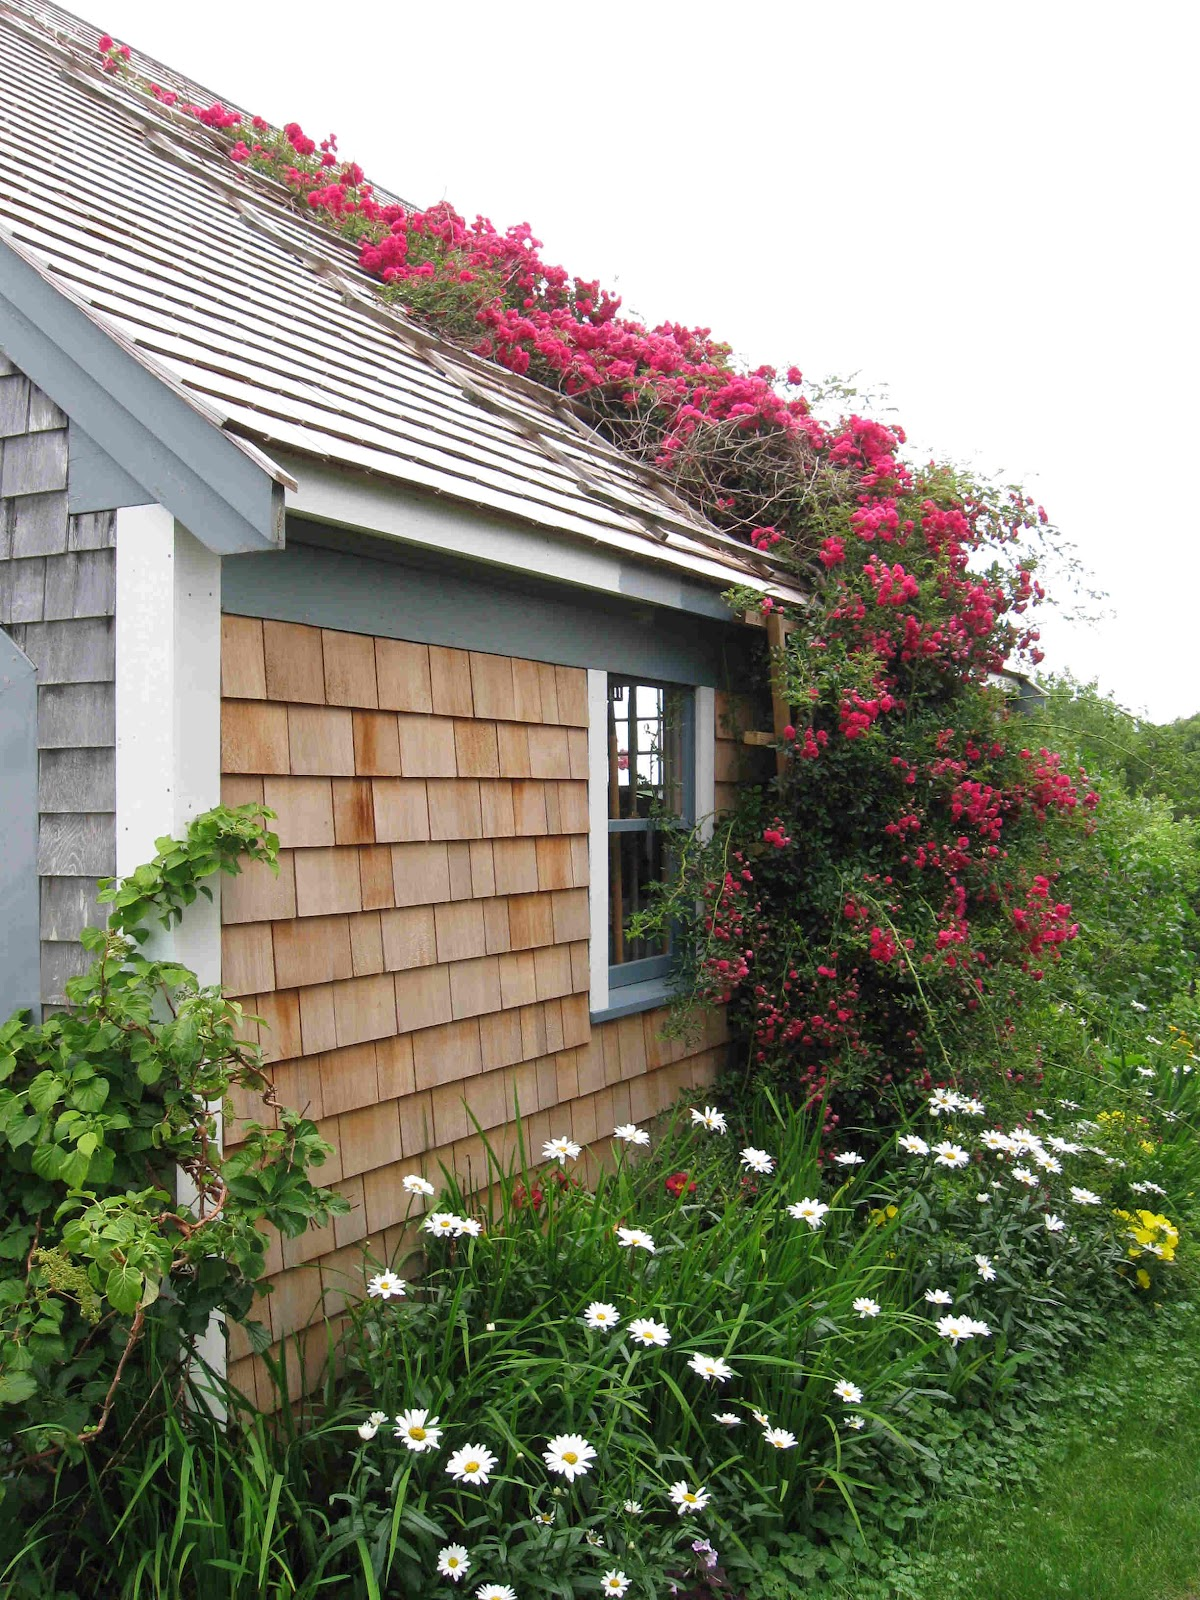 Cape Cod Rose Part - 41: Close Up Of Cape Cod Rambling Rose Covered Roof Trellis Photo Courtesy Of  Ark Gardens